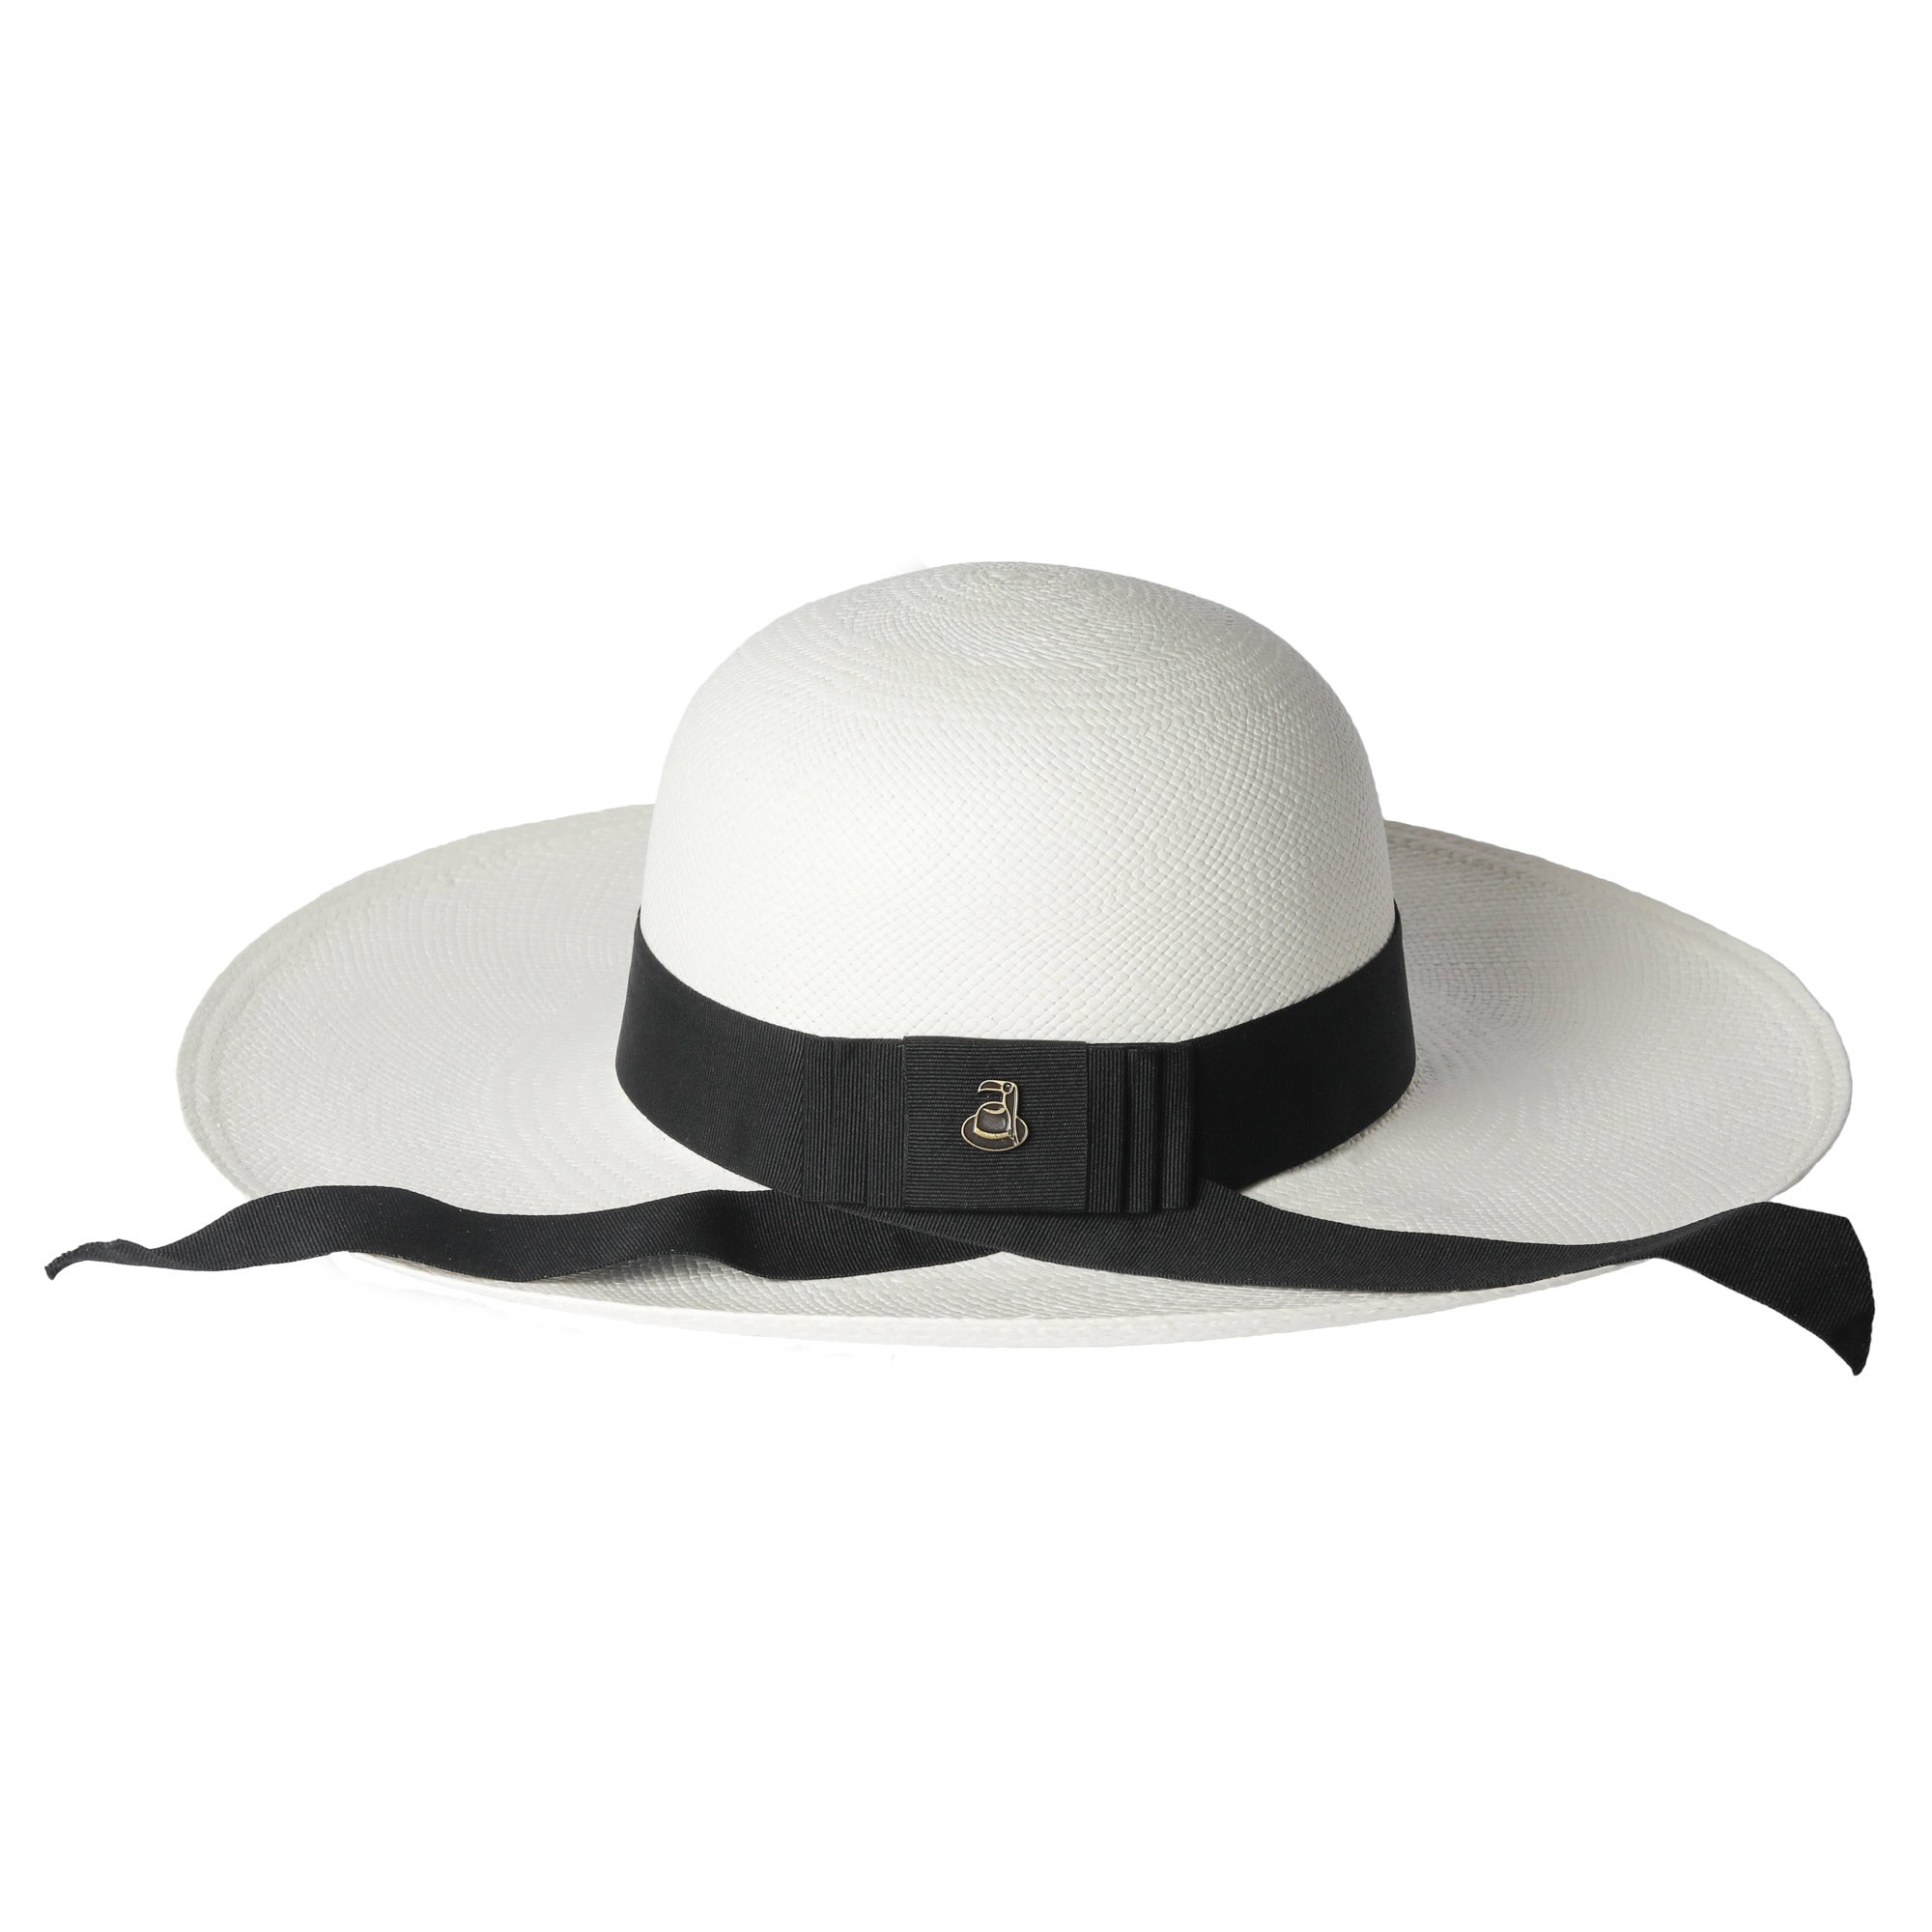 aa6cd4f0d54 The Lady Classic Panama Hat - ON SALE - – Ecua Andino Hats